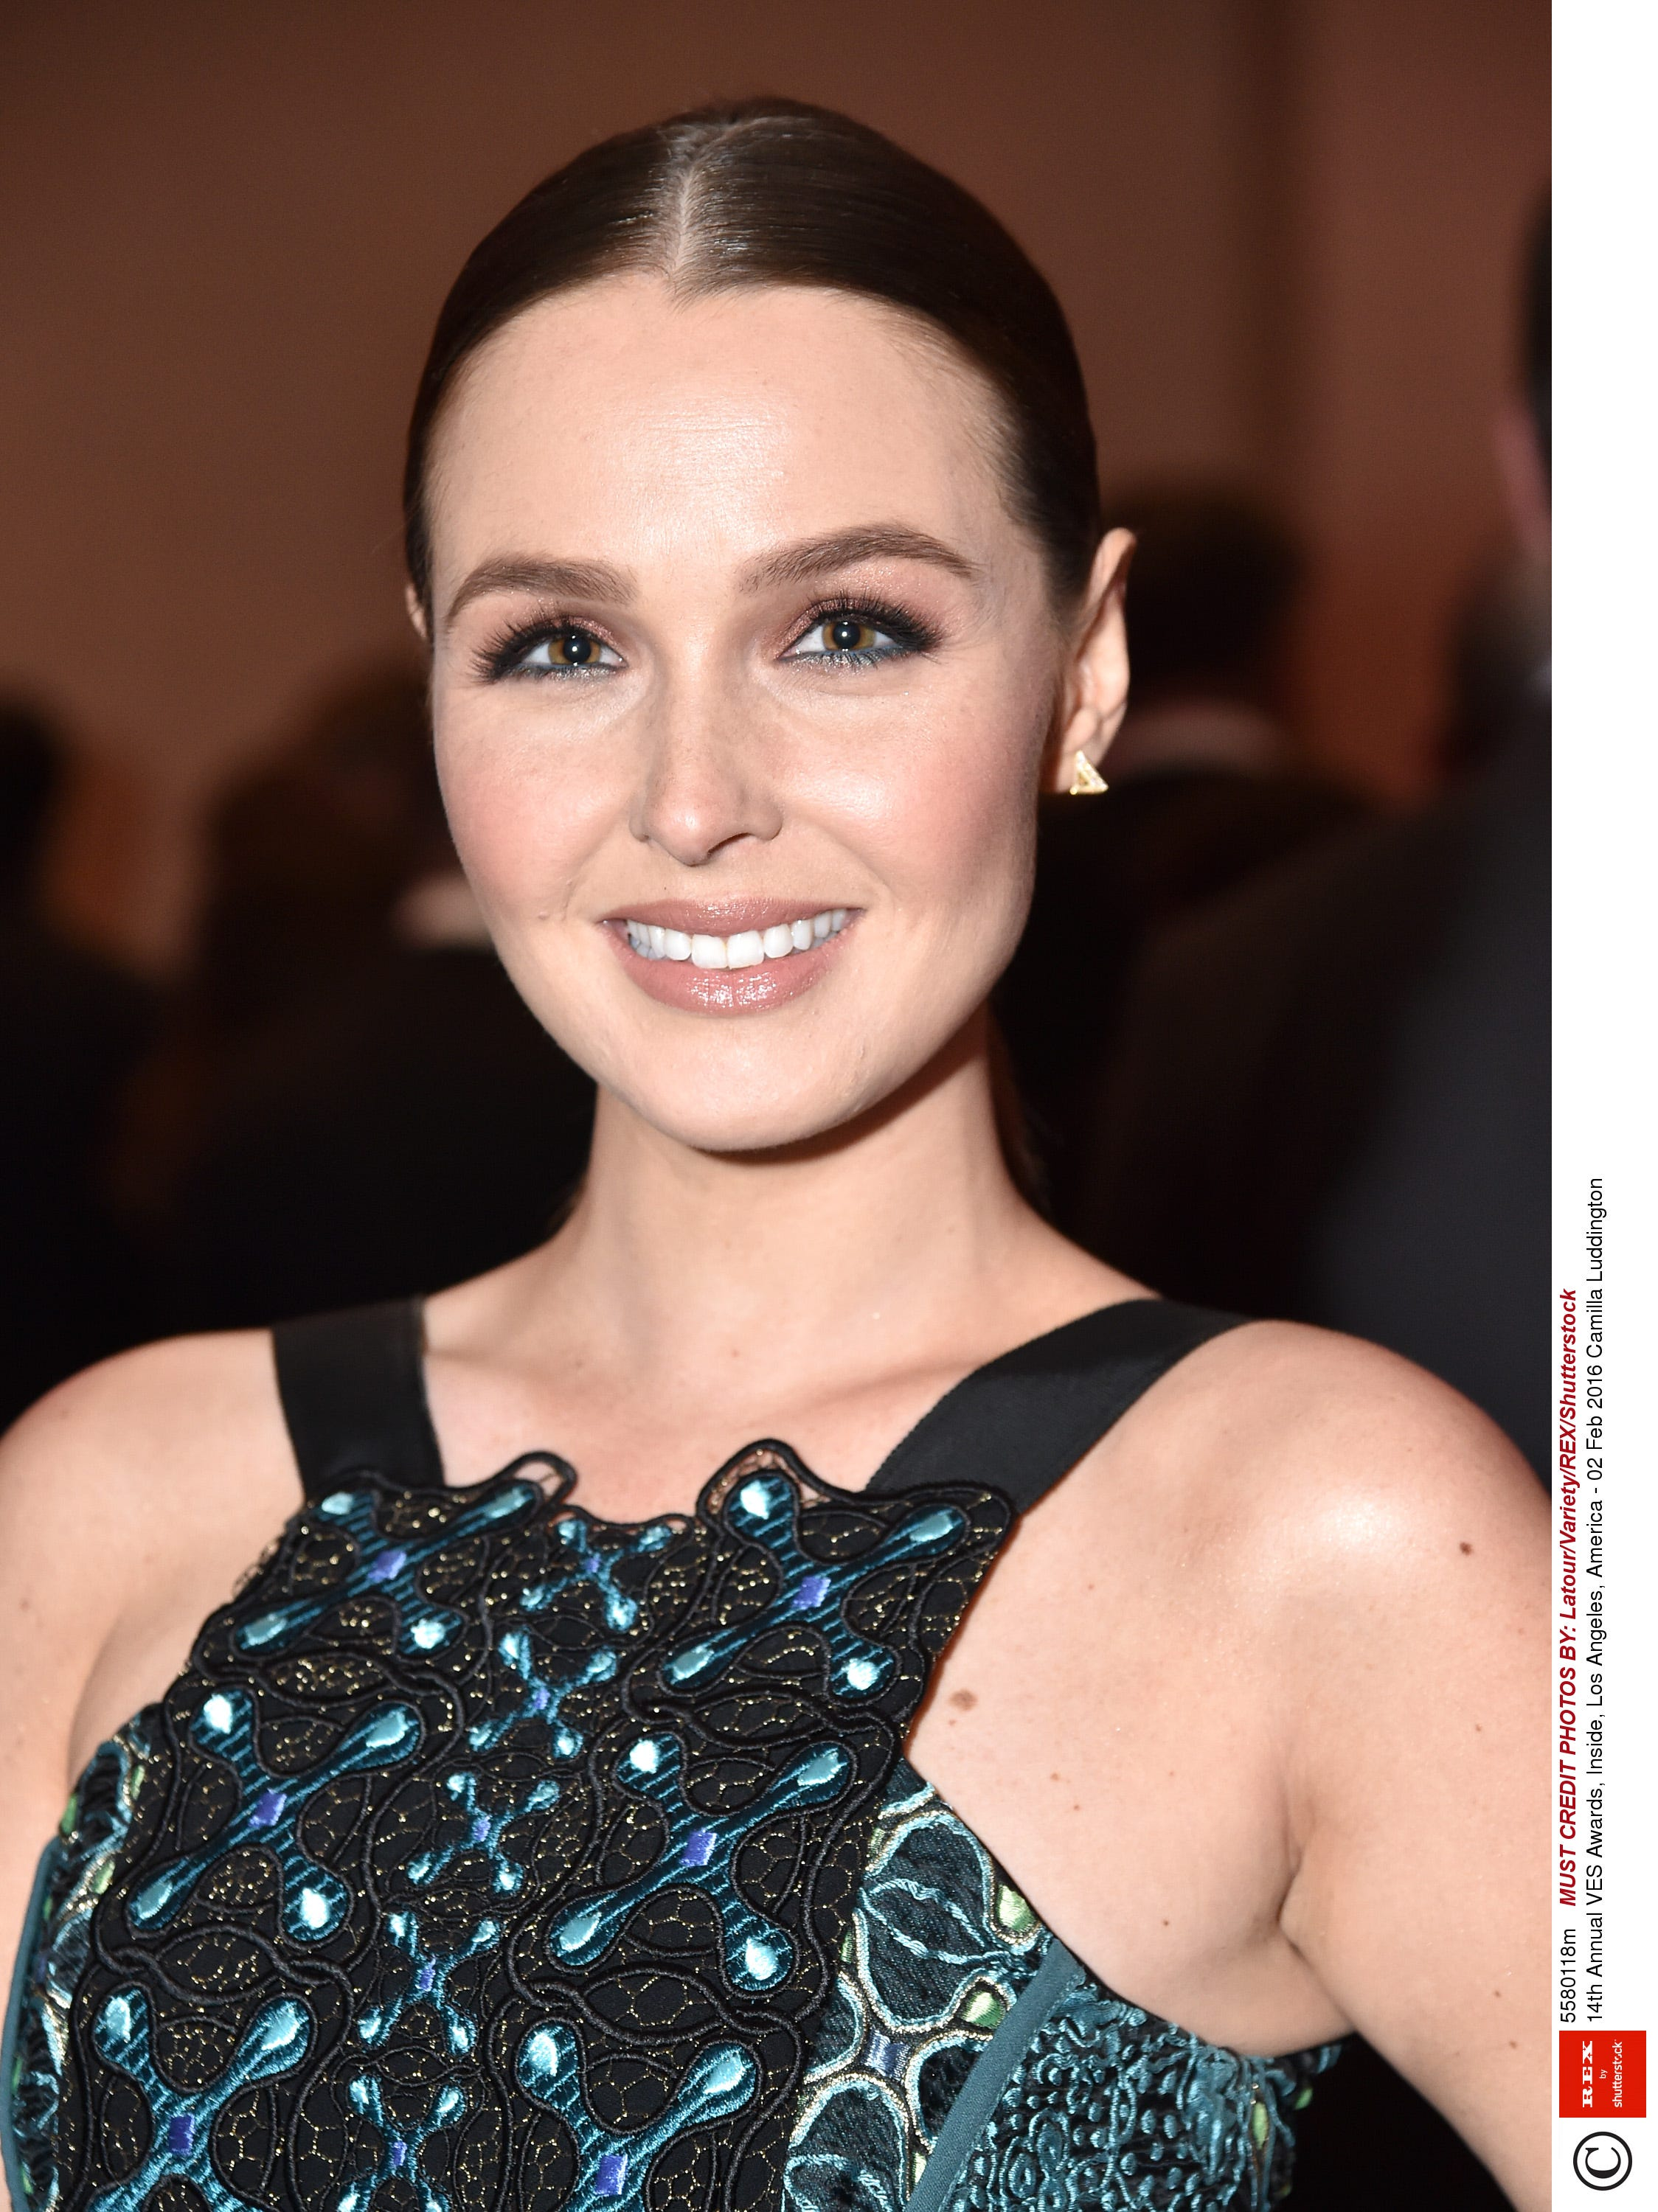 Camilla Luddington Camilla Luddington new foto